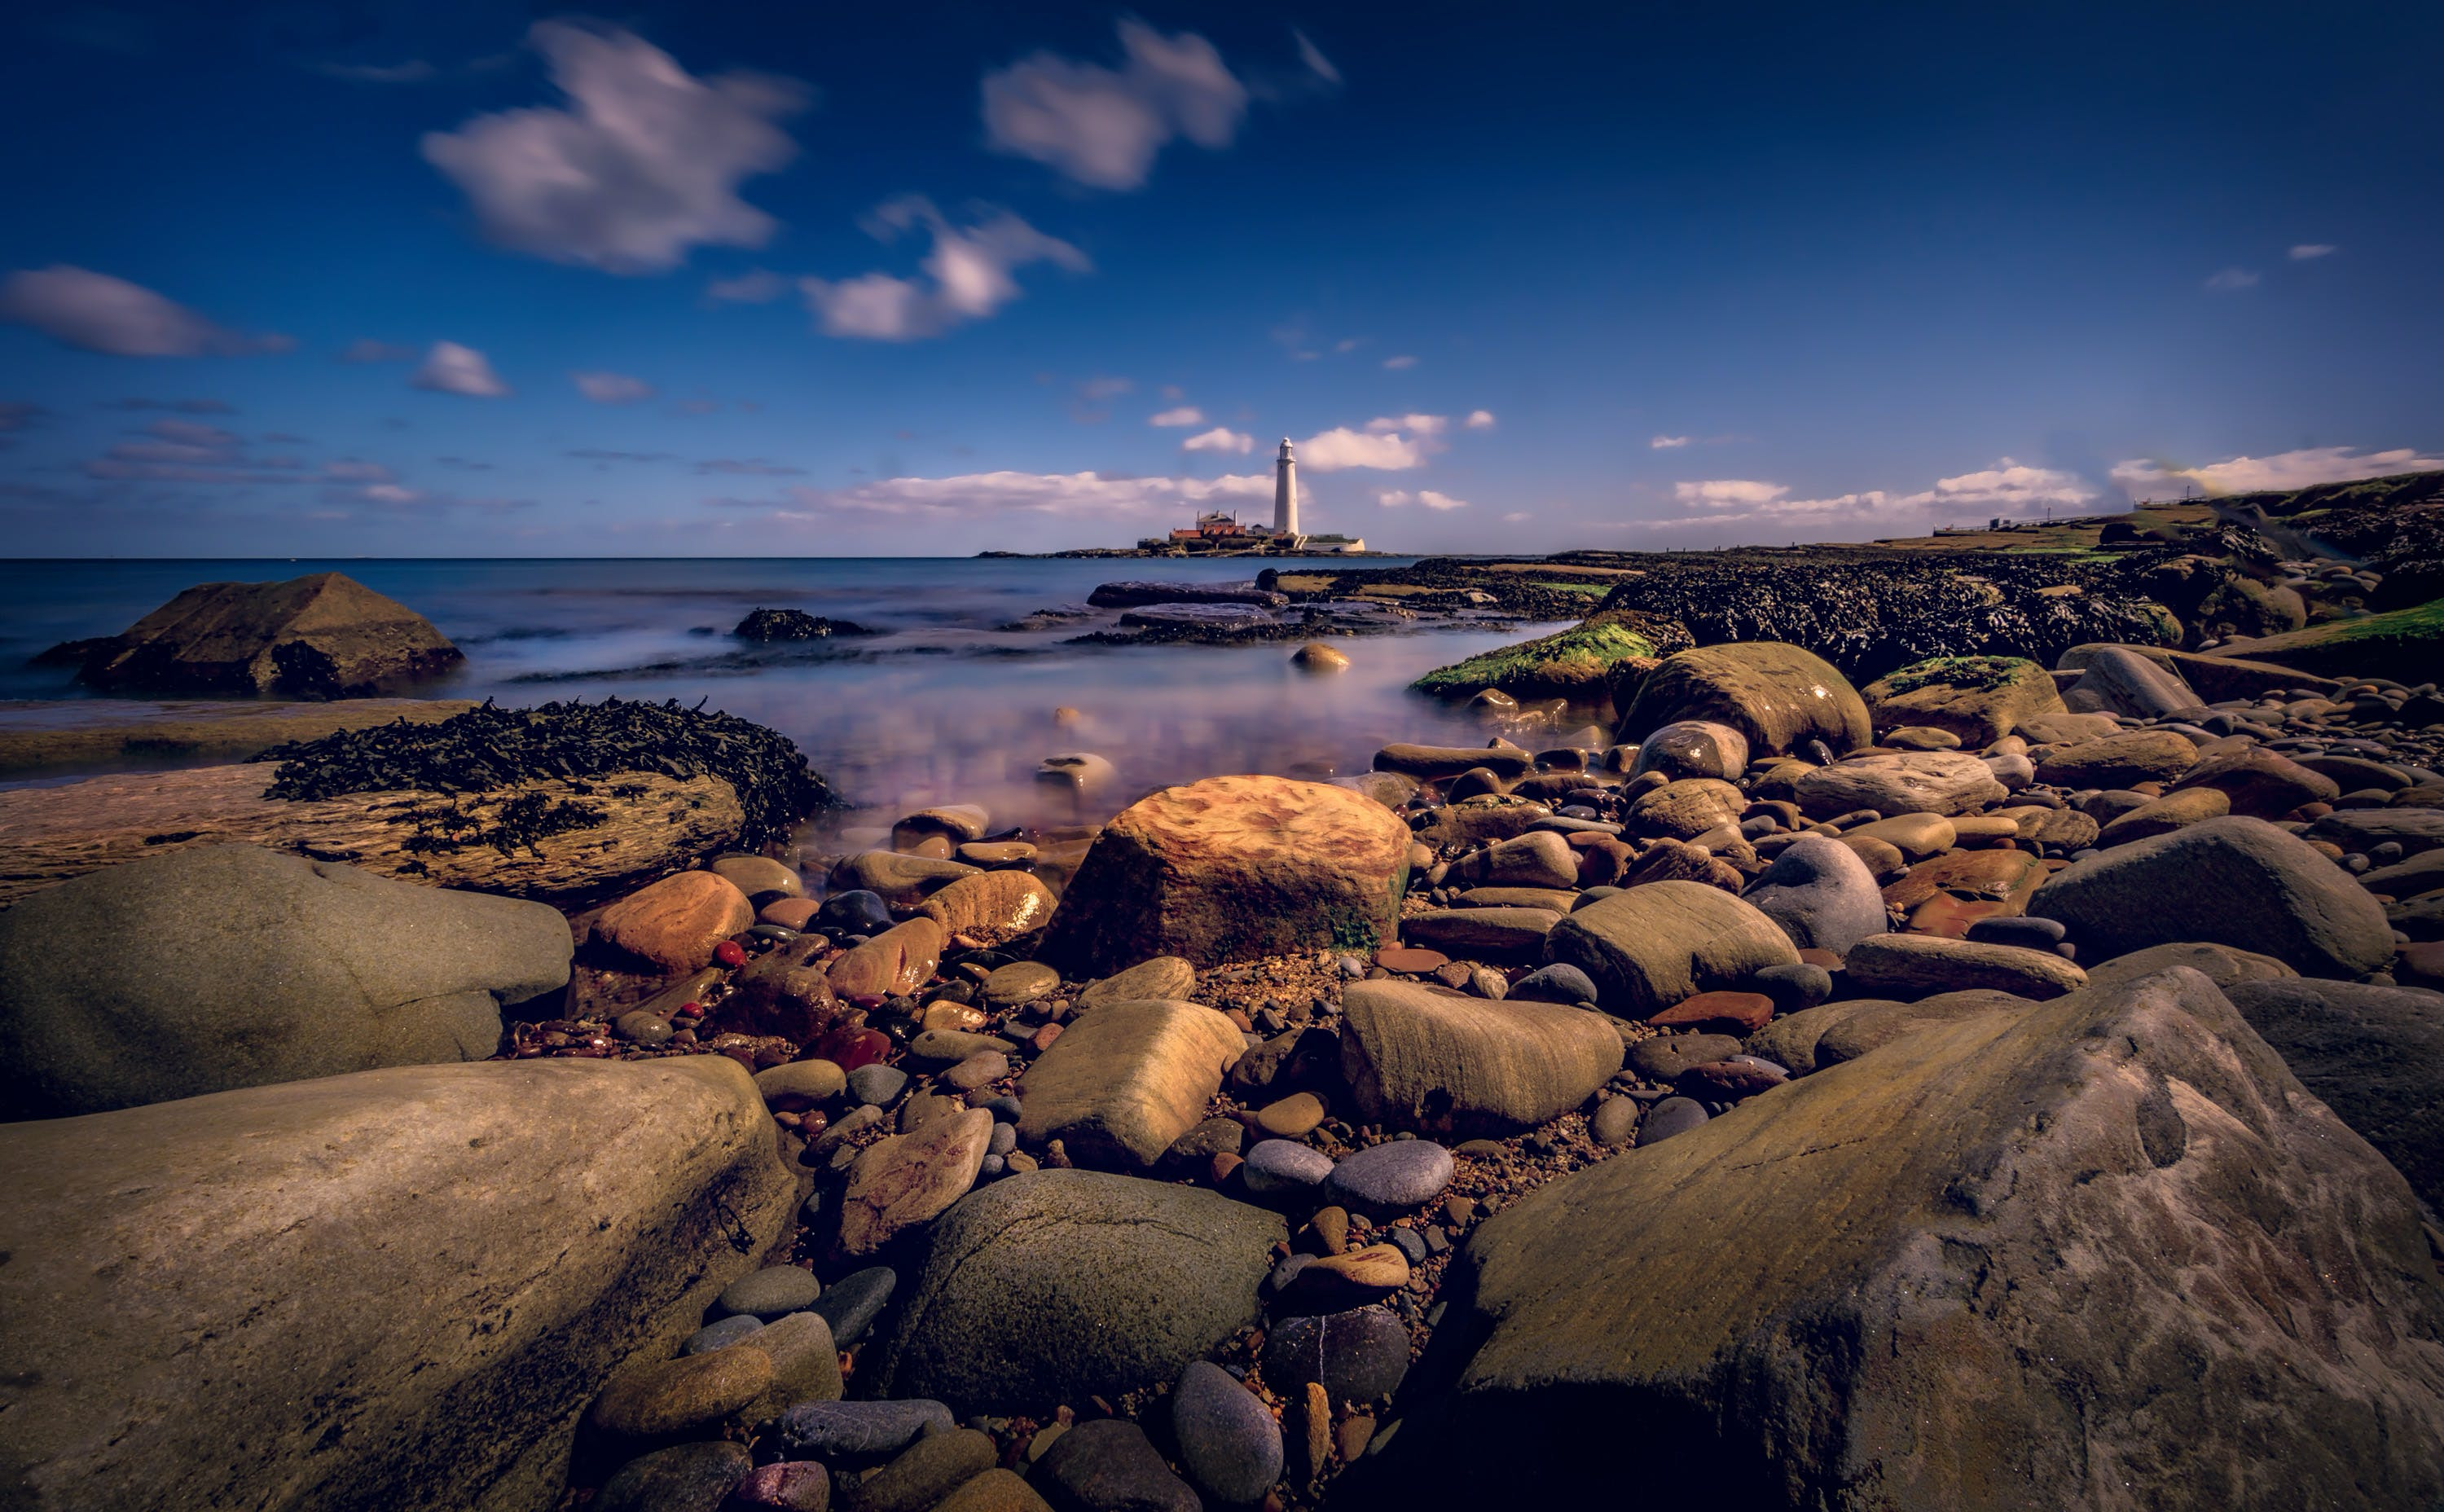 Worm's-eye View Photography of Lighthouse